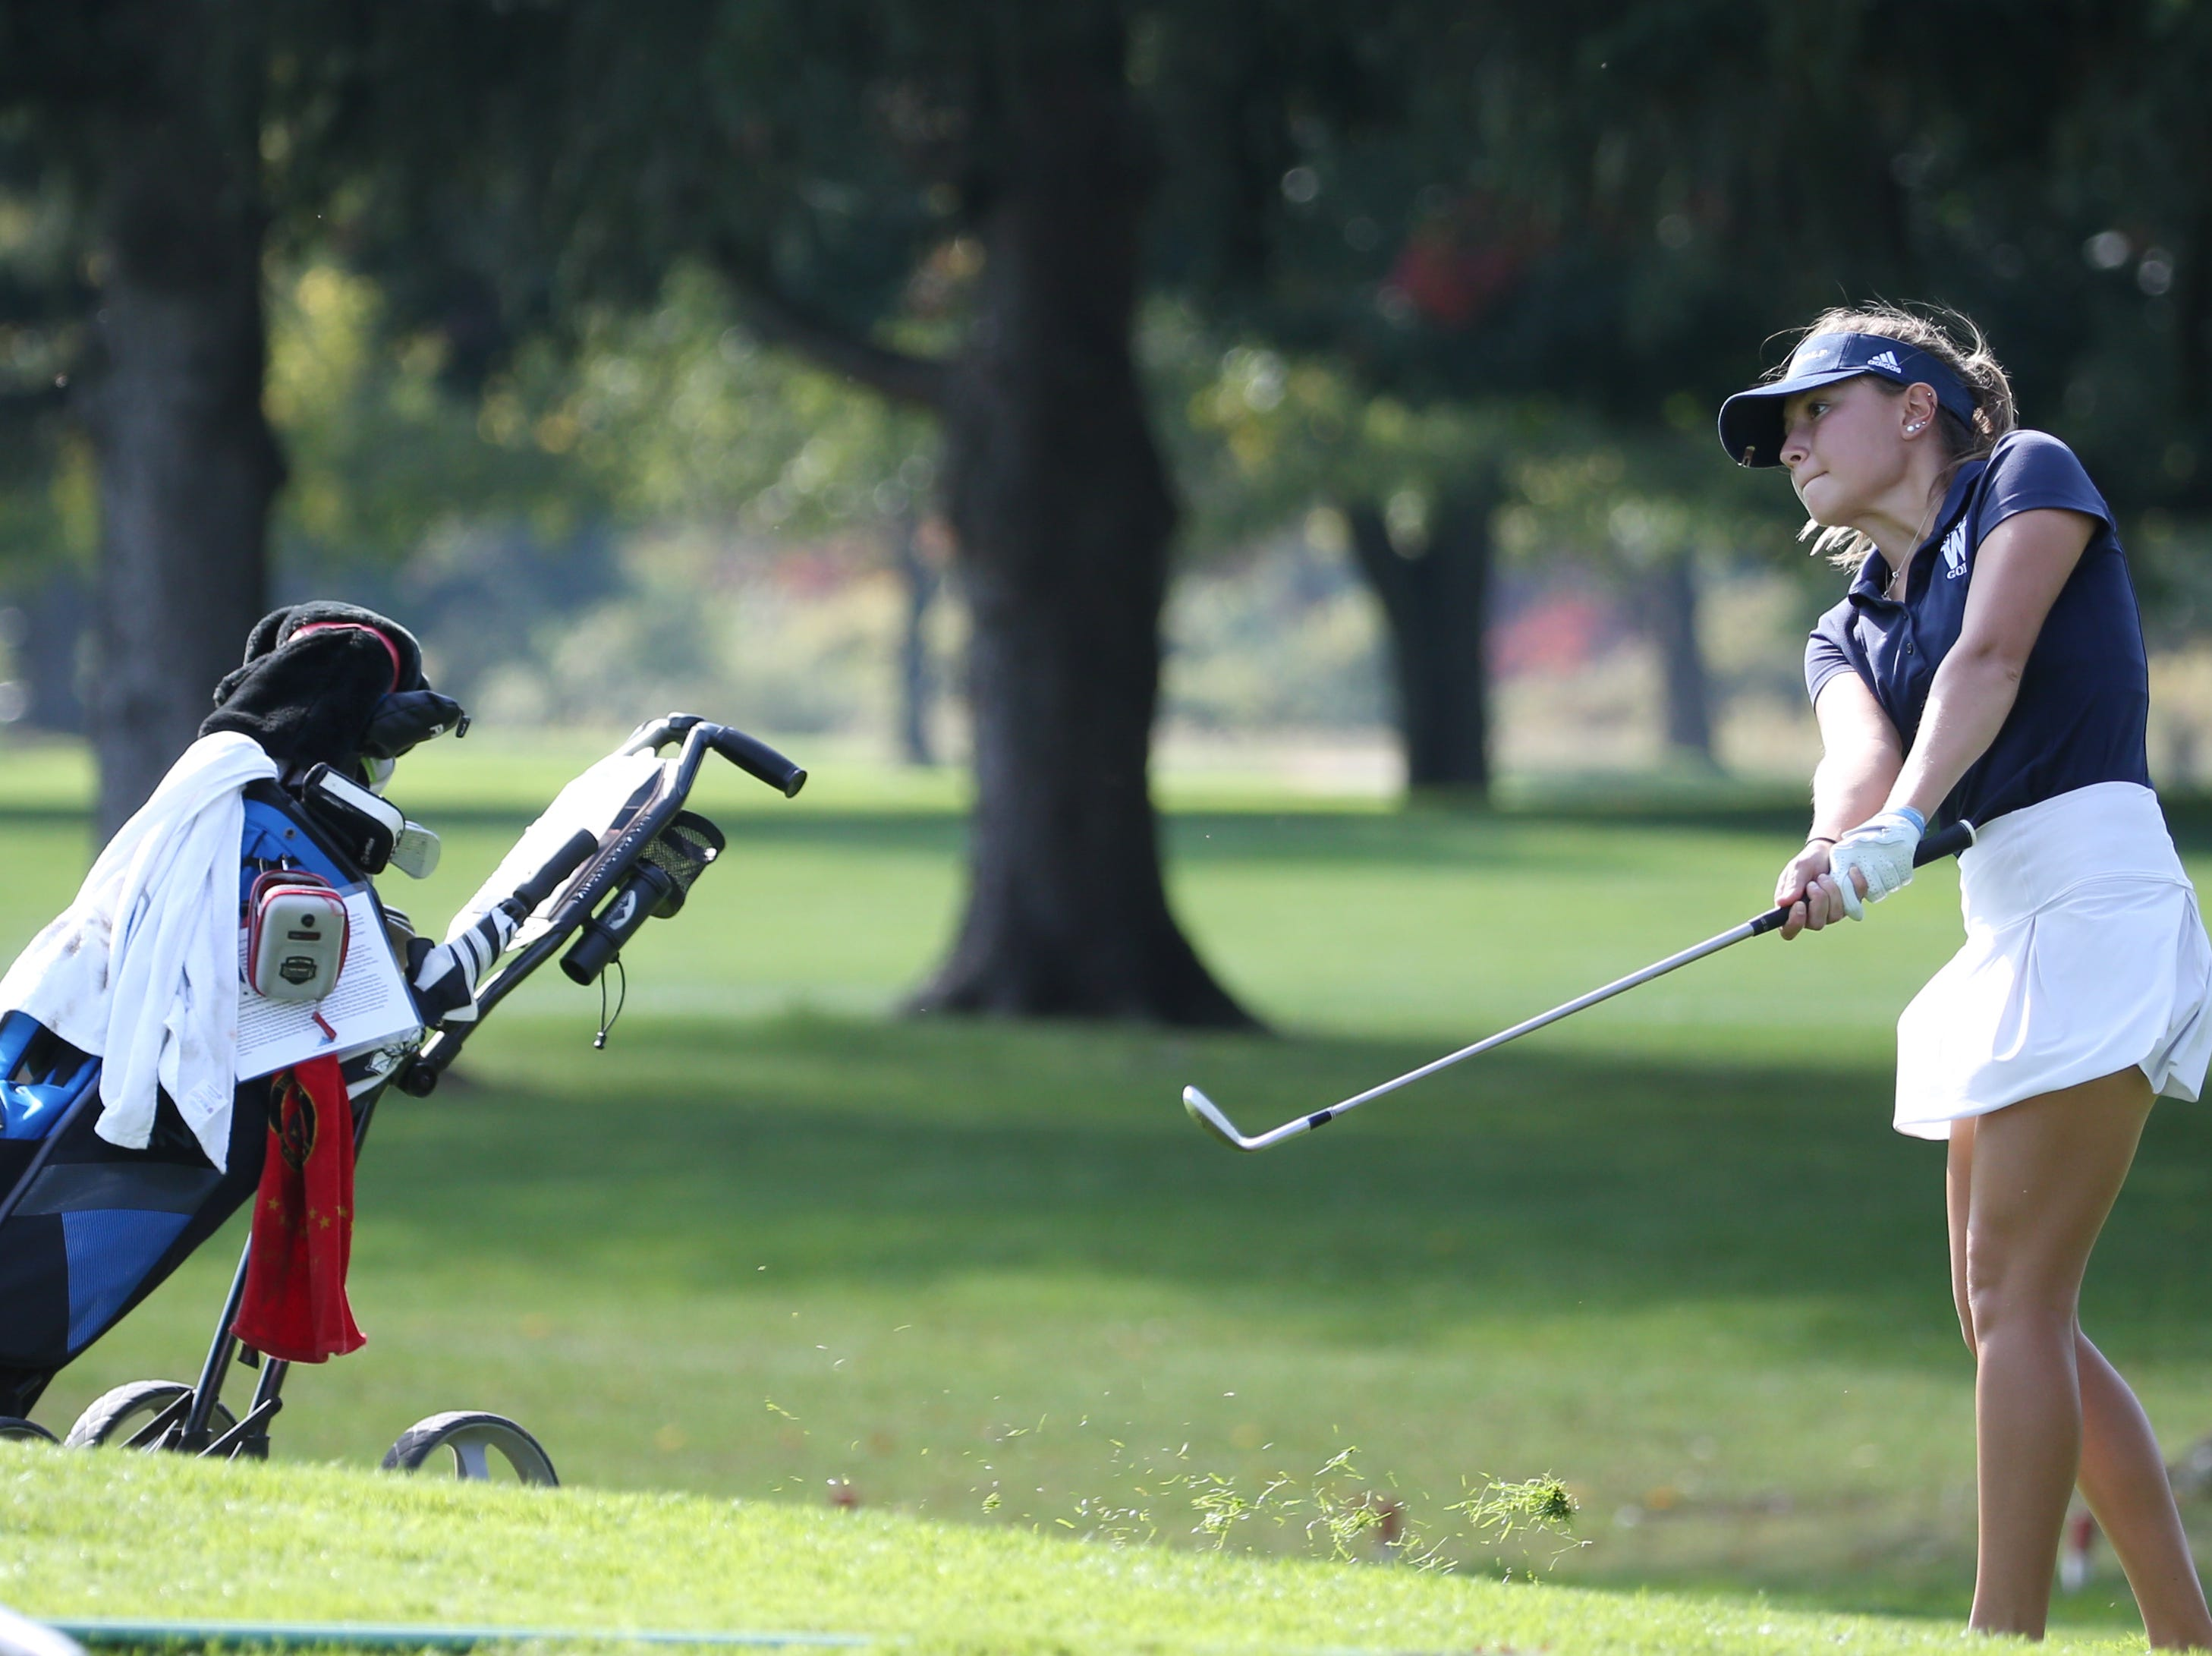 Mikah McDonnell chips to 9 at the Section V girls golf championship at Deerfield Country Club.